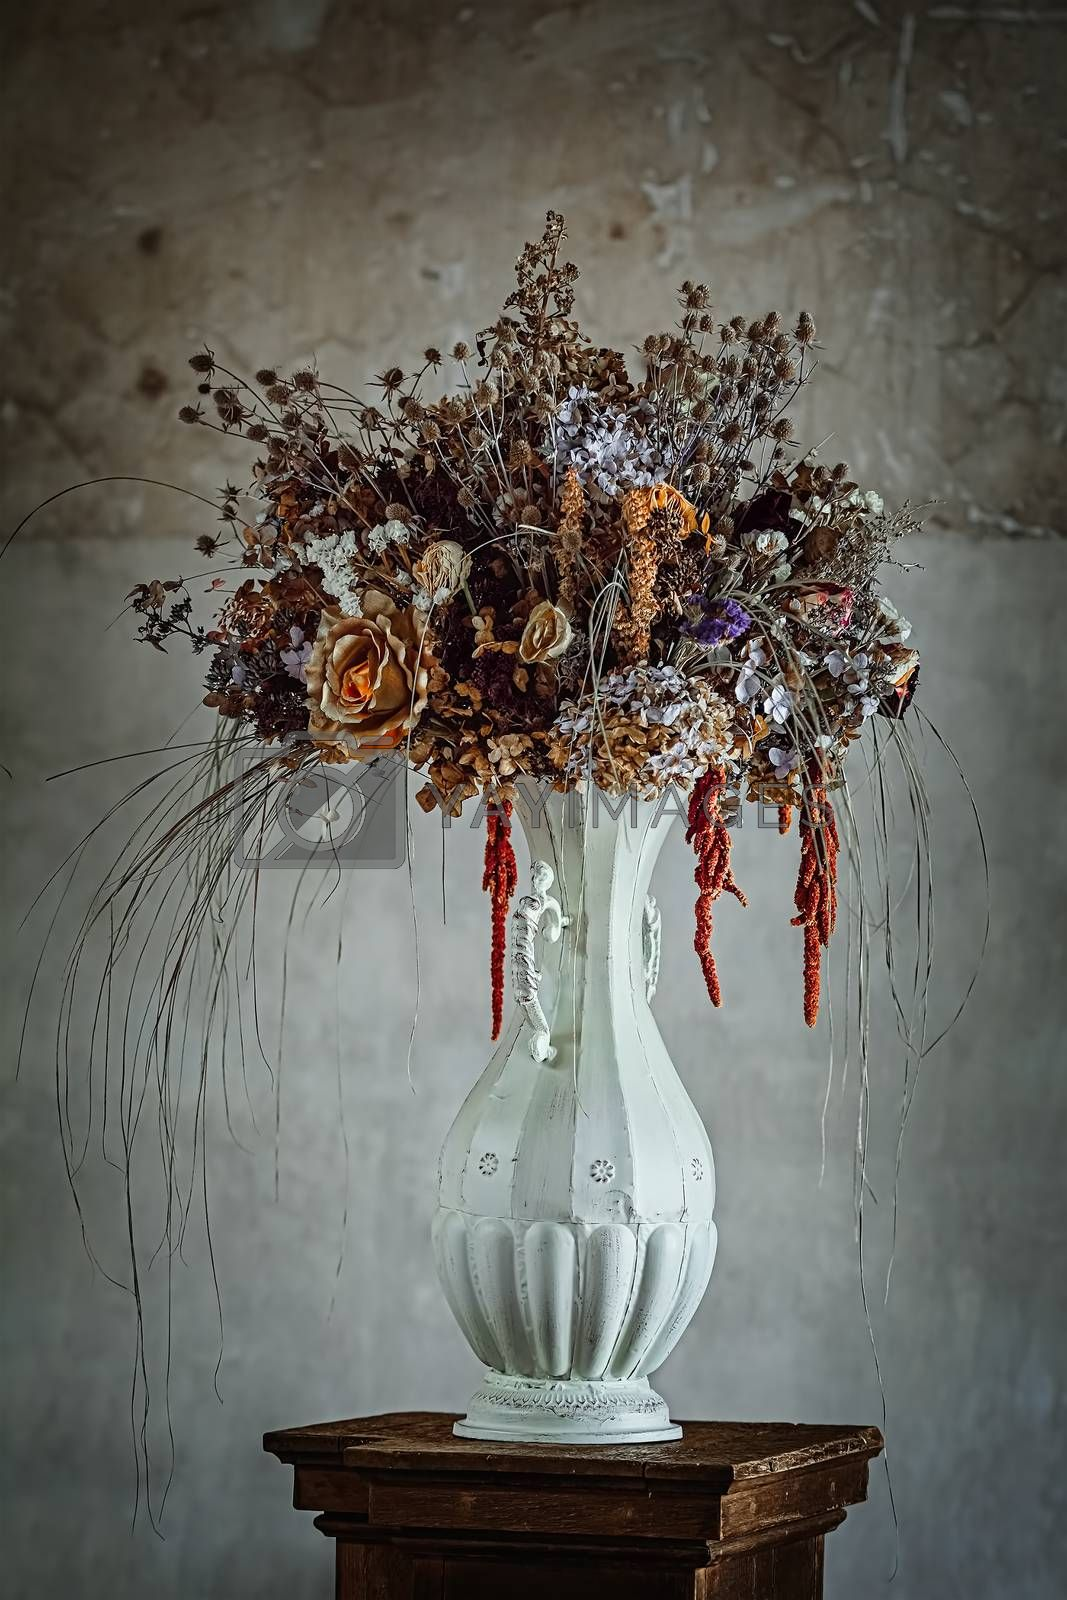 Bouquet of dried flowers in an abandoned palace